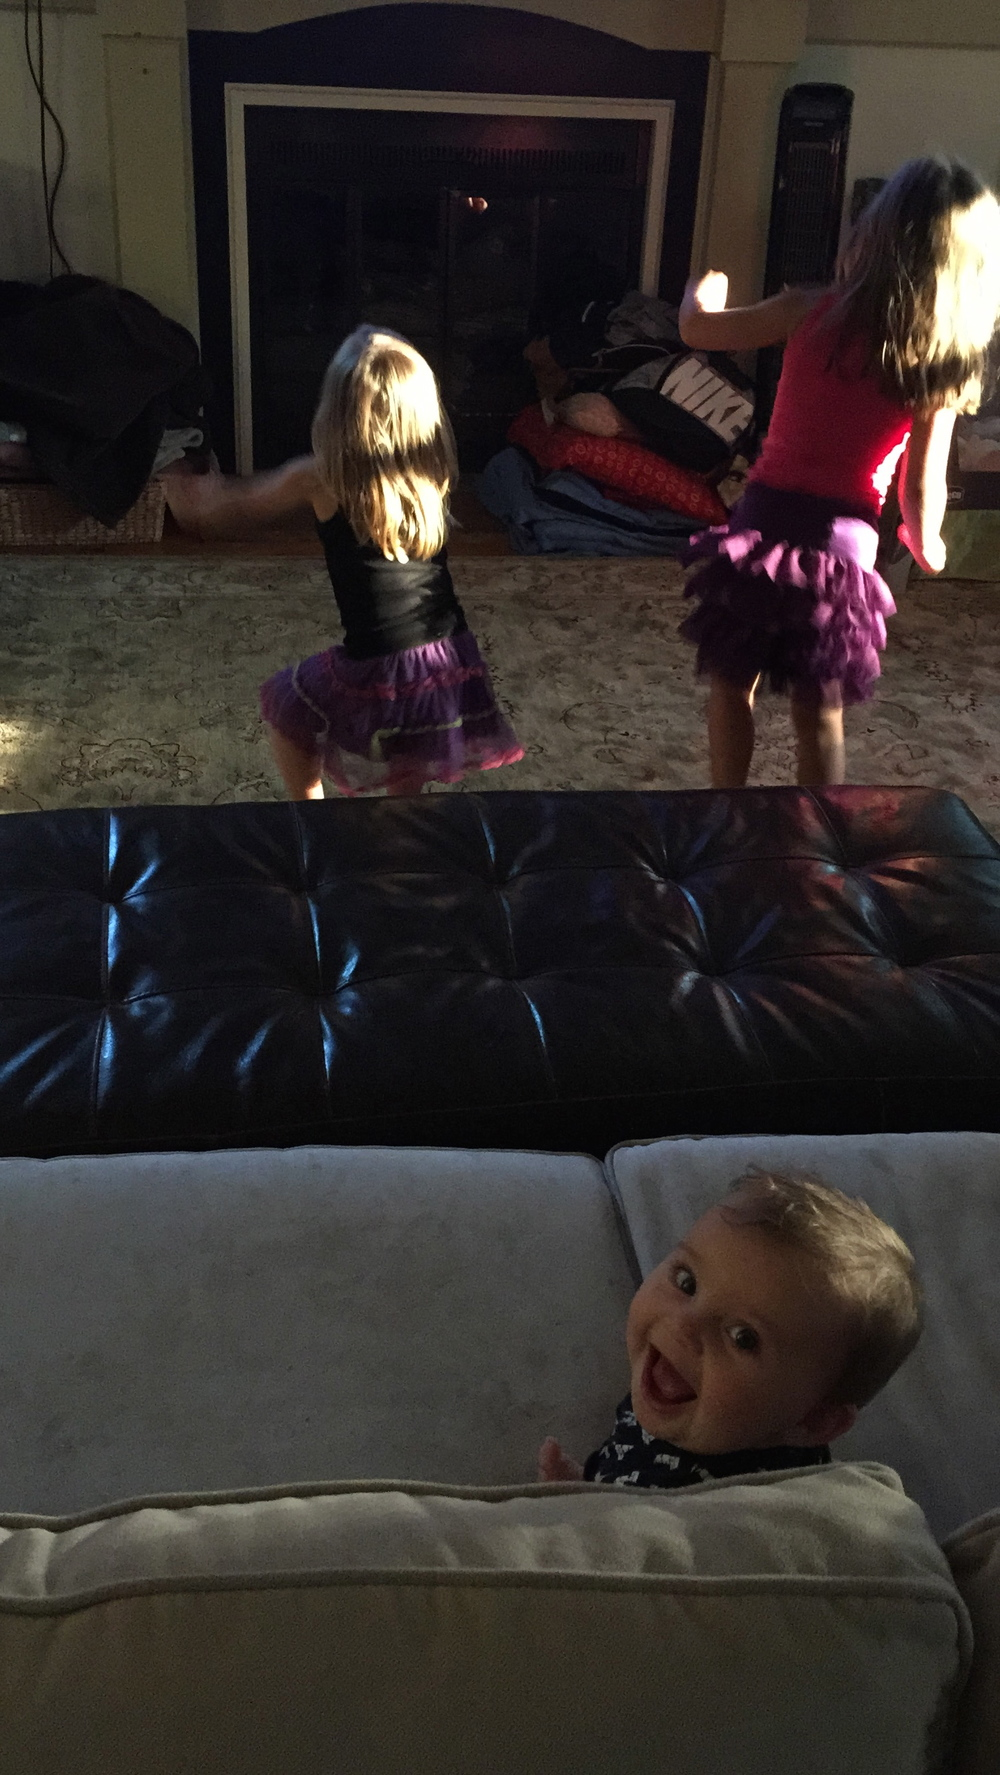 Isaac having a blast watching his sissies do the Whip and Nae Nae. SOOO funny these little people!